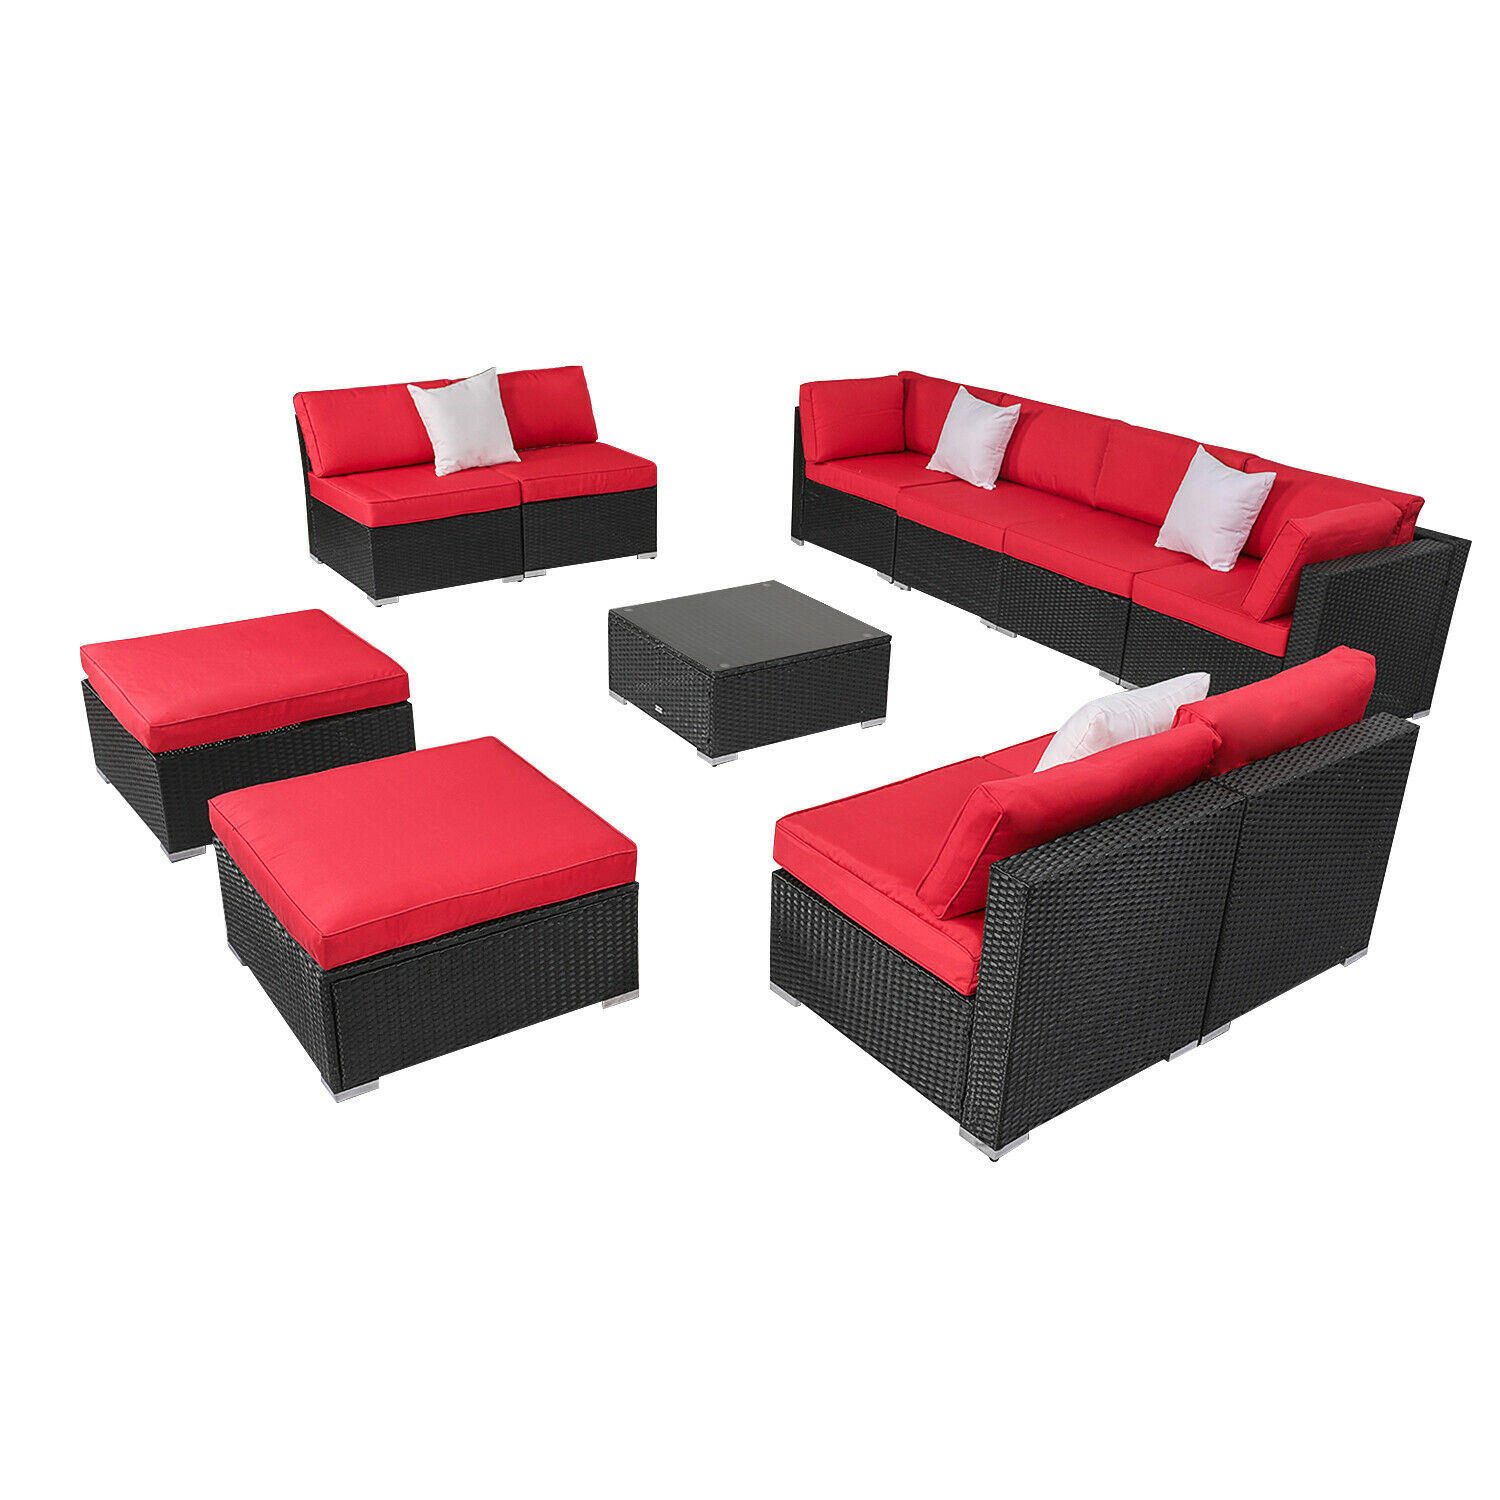 Garden Furniture - 2-11PCS Patio Rattan Wicker Furniture Set Garden Sectional Couch Sofa Red